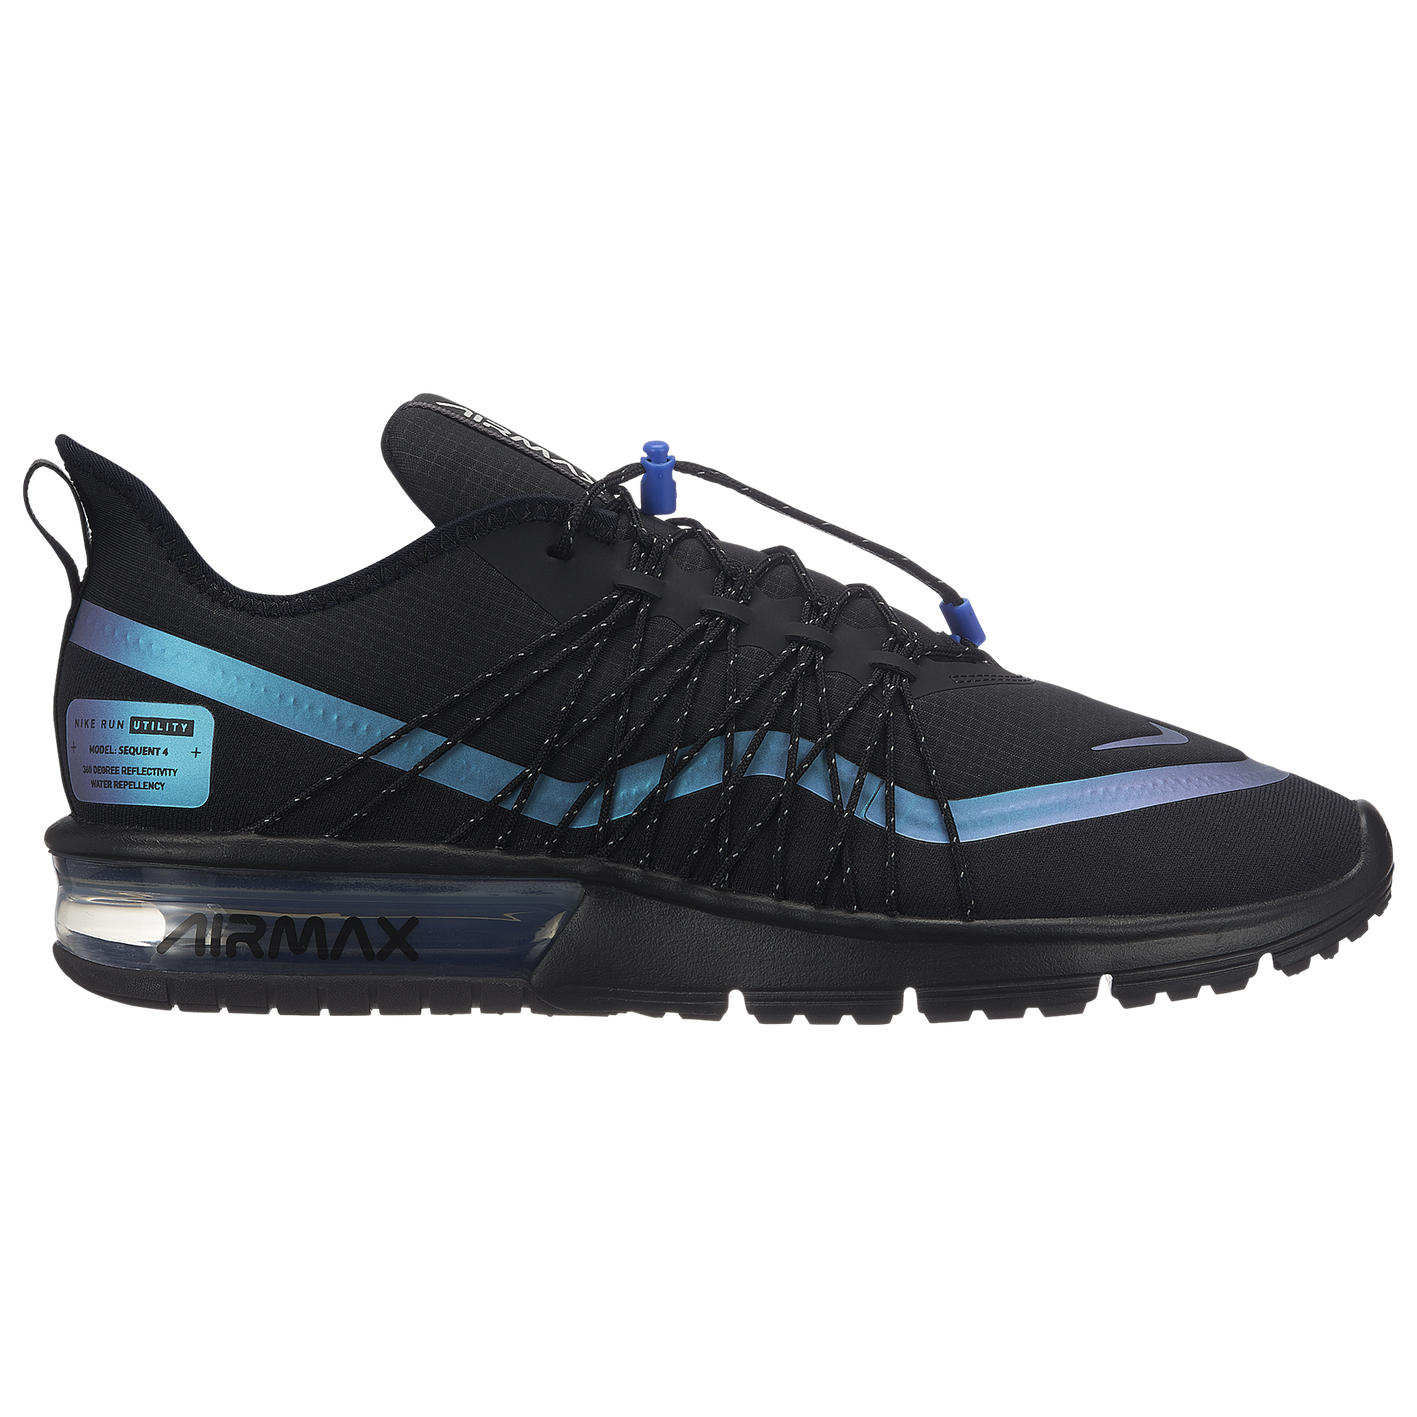 f2a23a8499 Nike Air Max Sequent 4 Utility - Men's - Casual - Shoes - Black ...